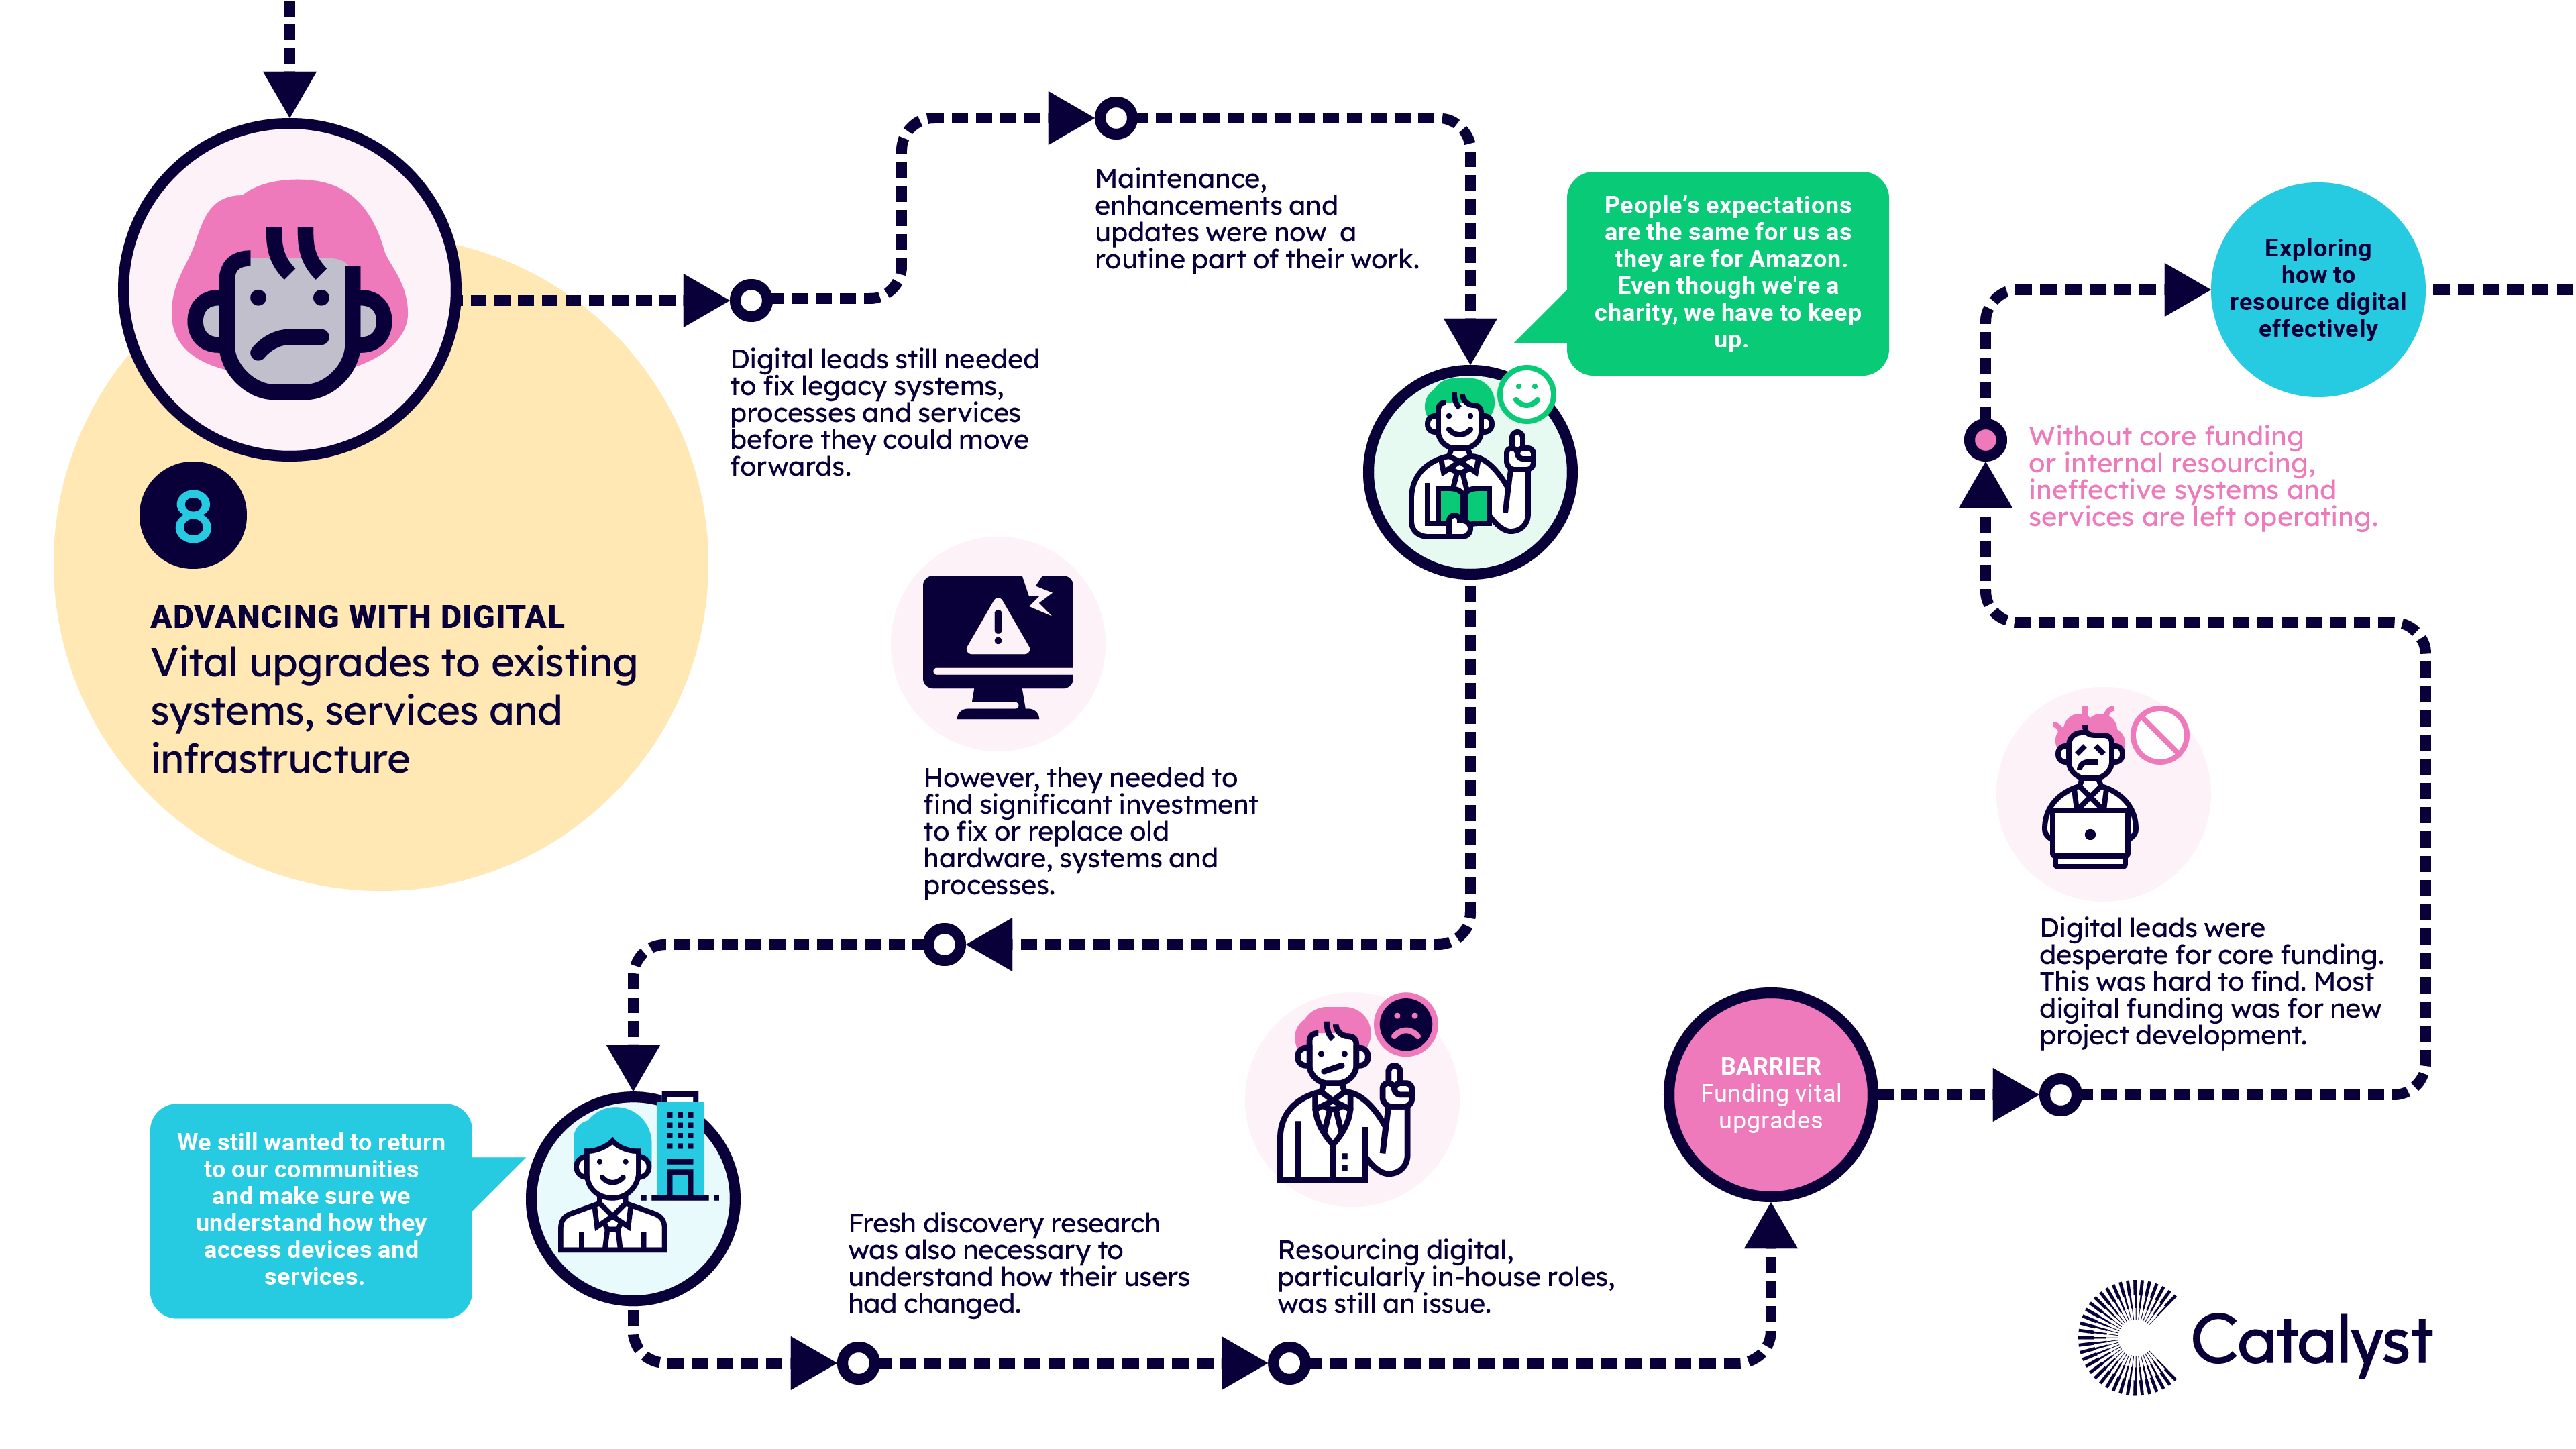 A visual map of pattern 8, when charities were advancing with digital and embarking on vital upgrades.  The text highlights the most common experiences, risk factors, barriers and enablers at this stage of the journey.